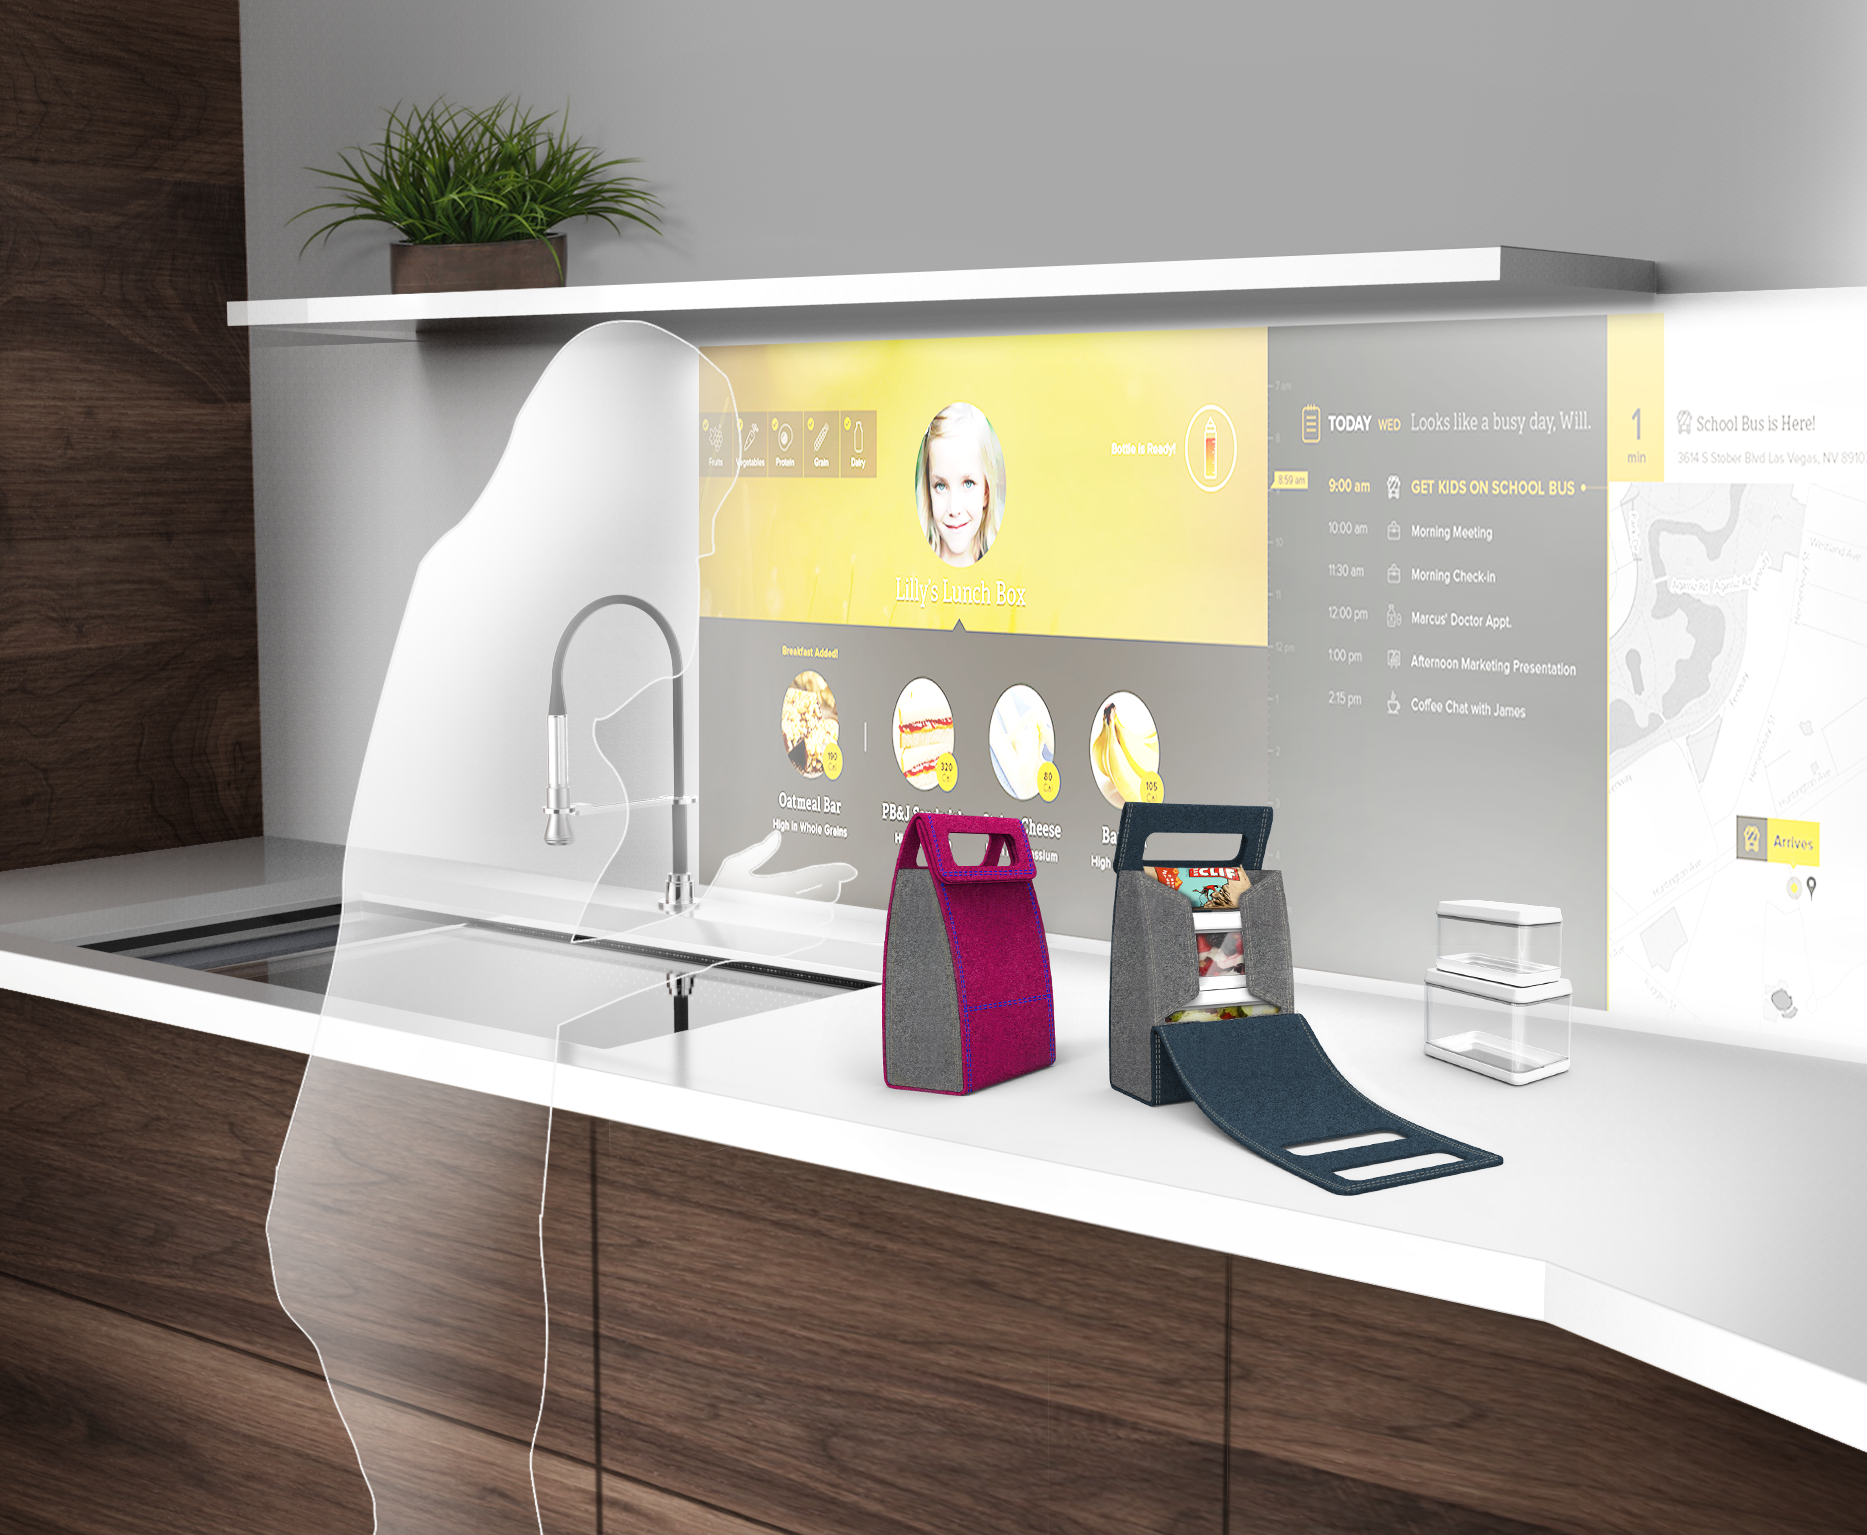 Whirlpool showcases the Interactive Kitchen of the Future at